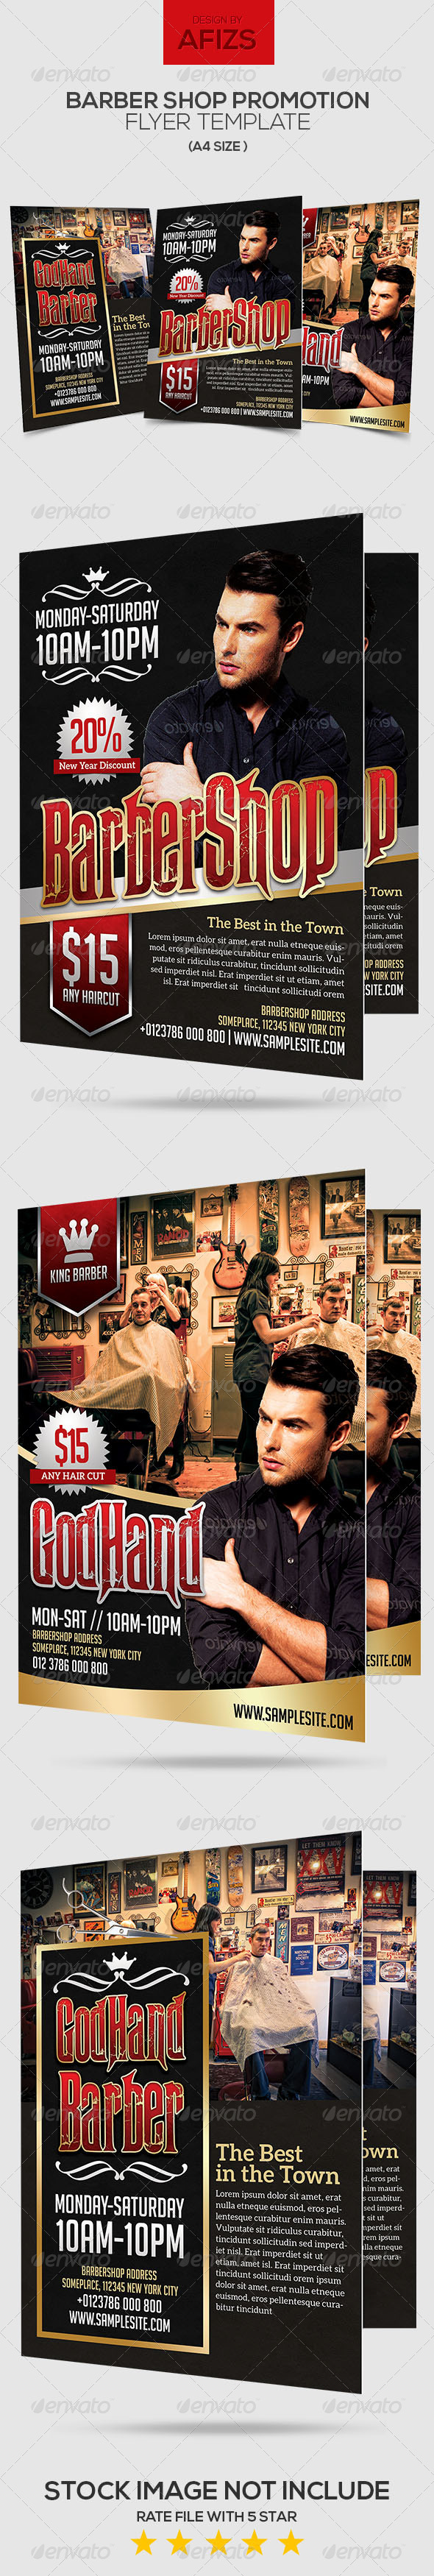 GraphicRiver Barber Shop Promotion Flyer 6426882